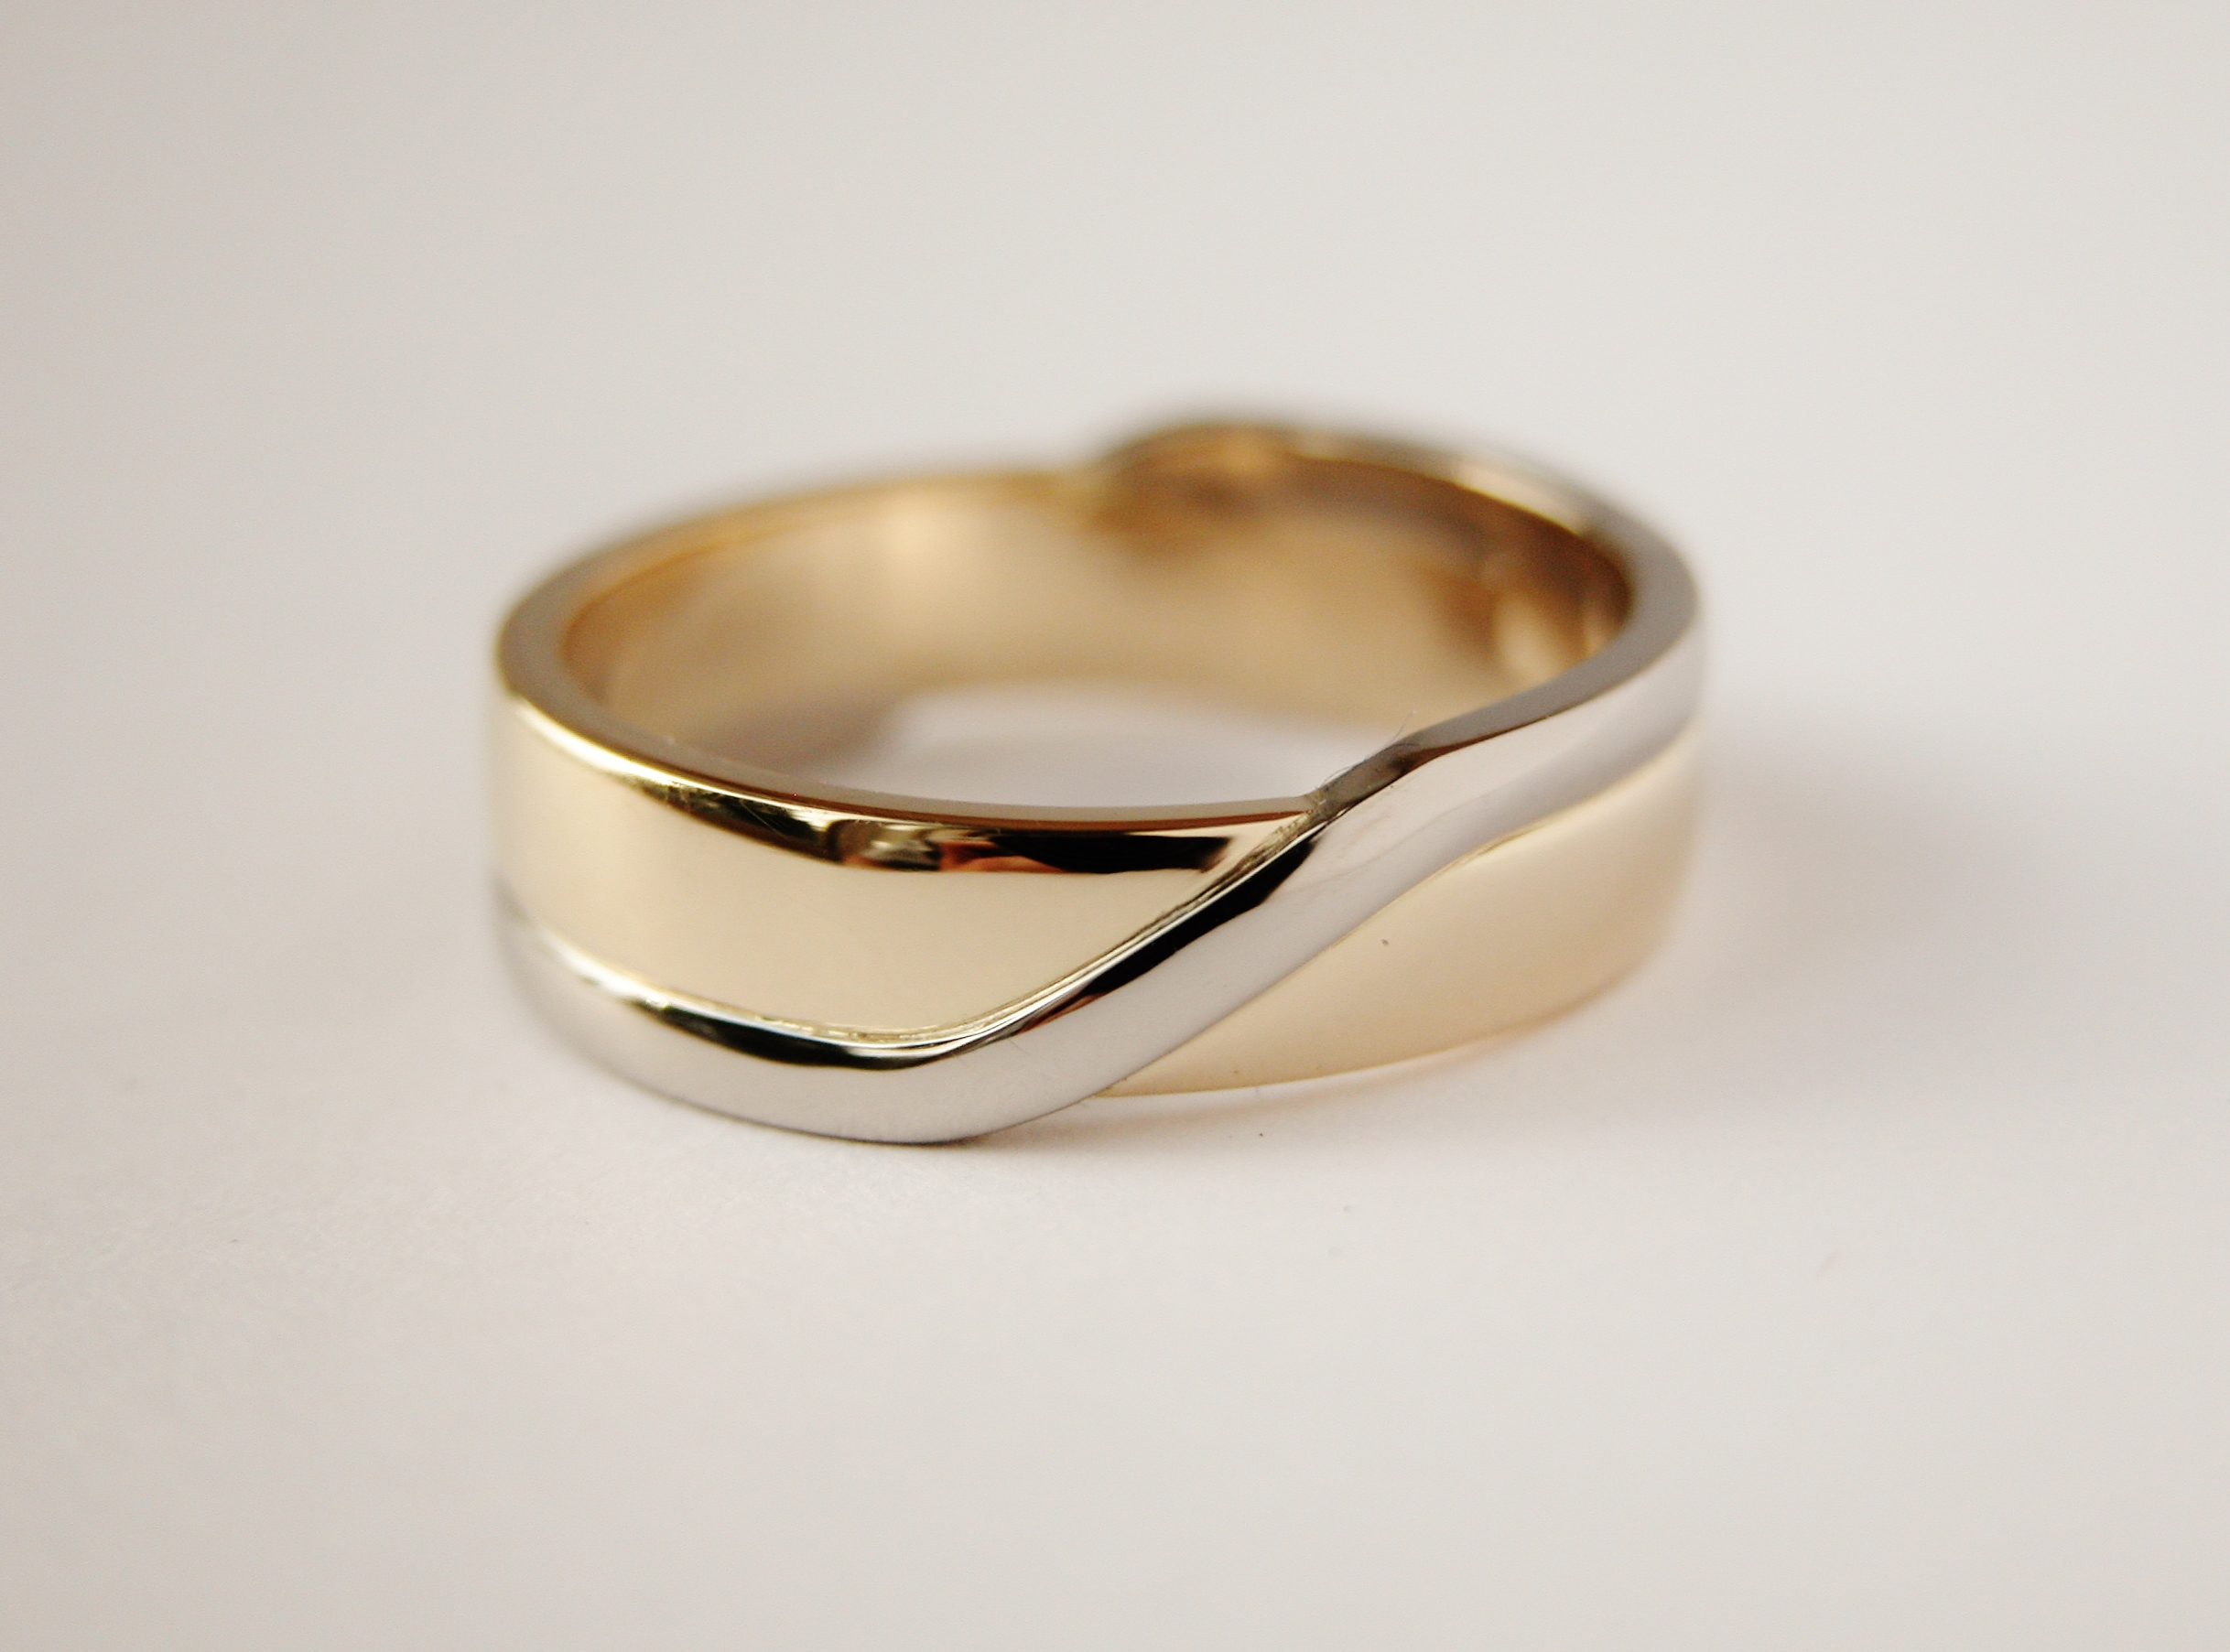 Gents 2 tone 9ct. yellow gold wedding ring with broad palladium wire applied & inlayed around edges & crossing over diagonally on the top and underside.